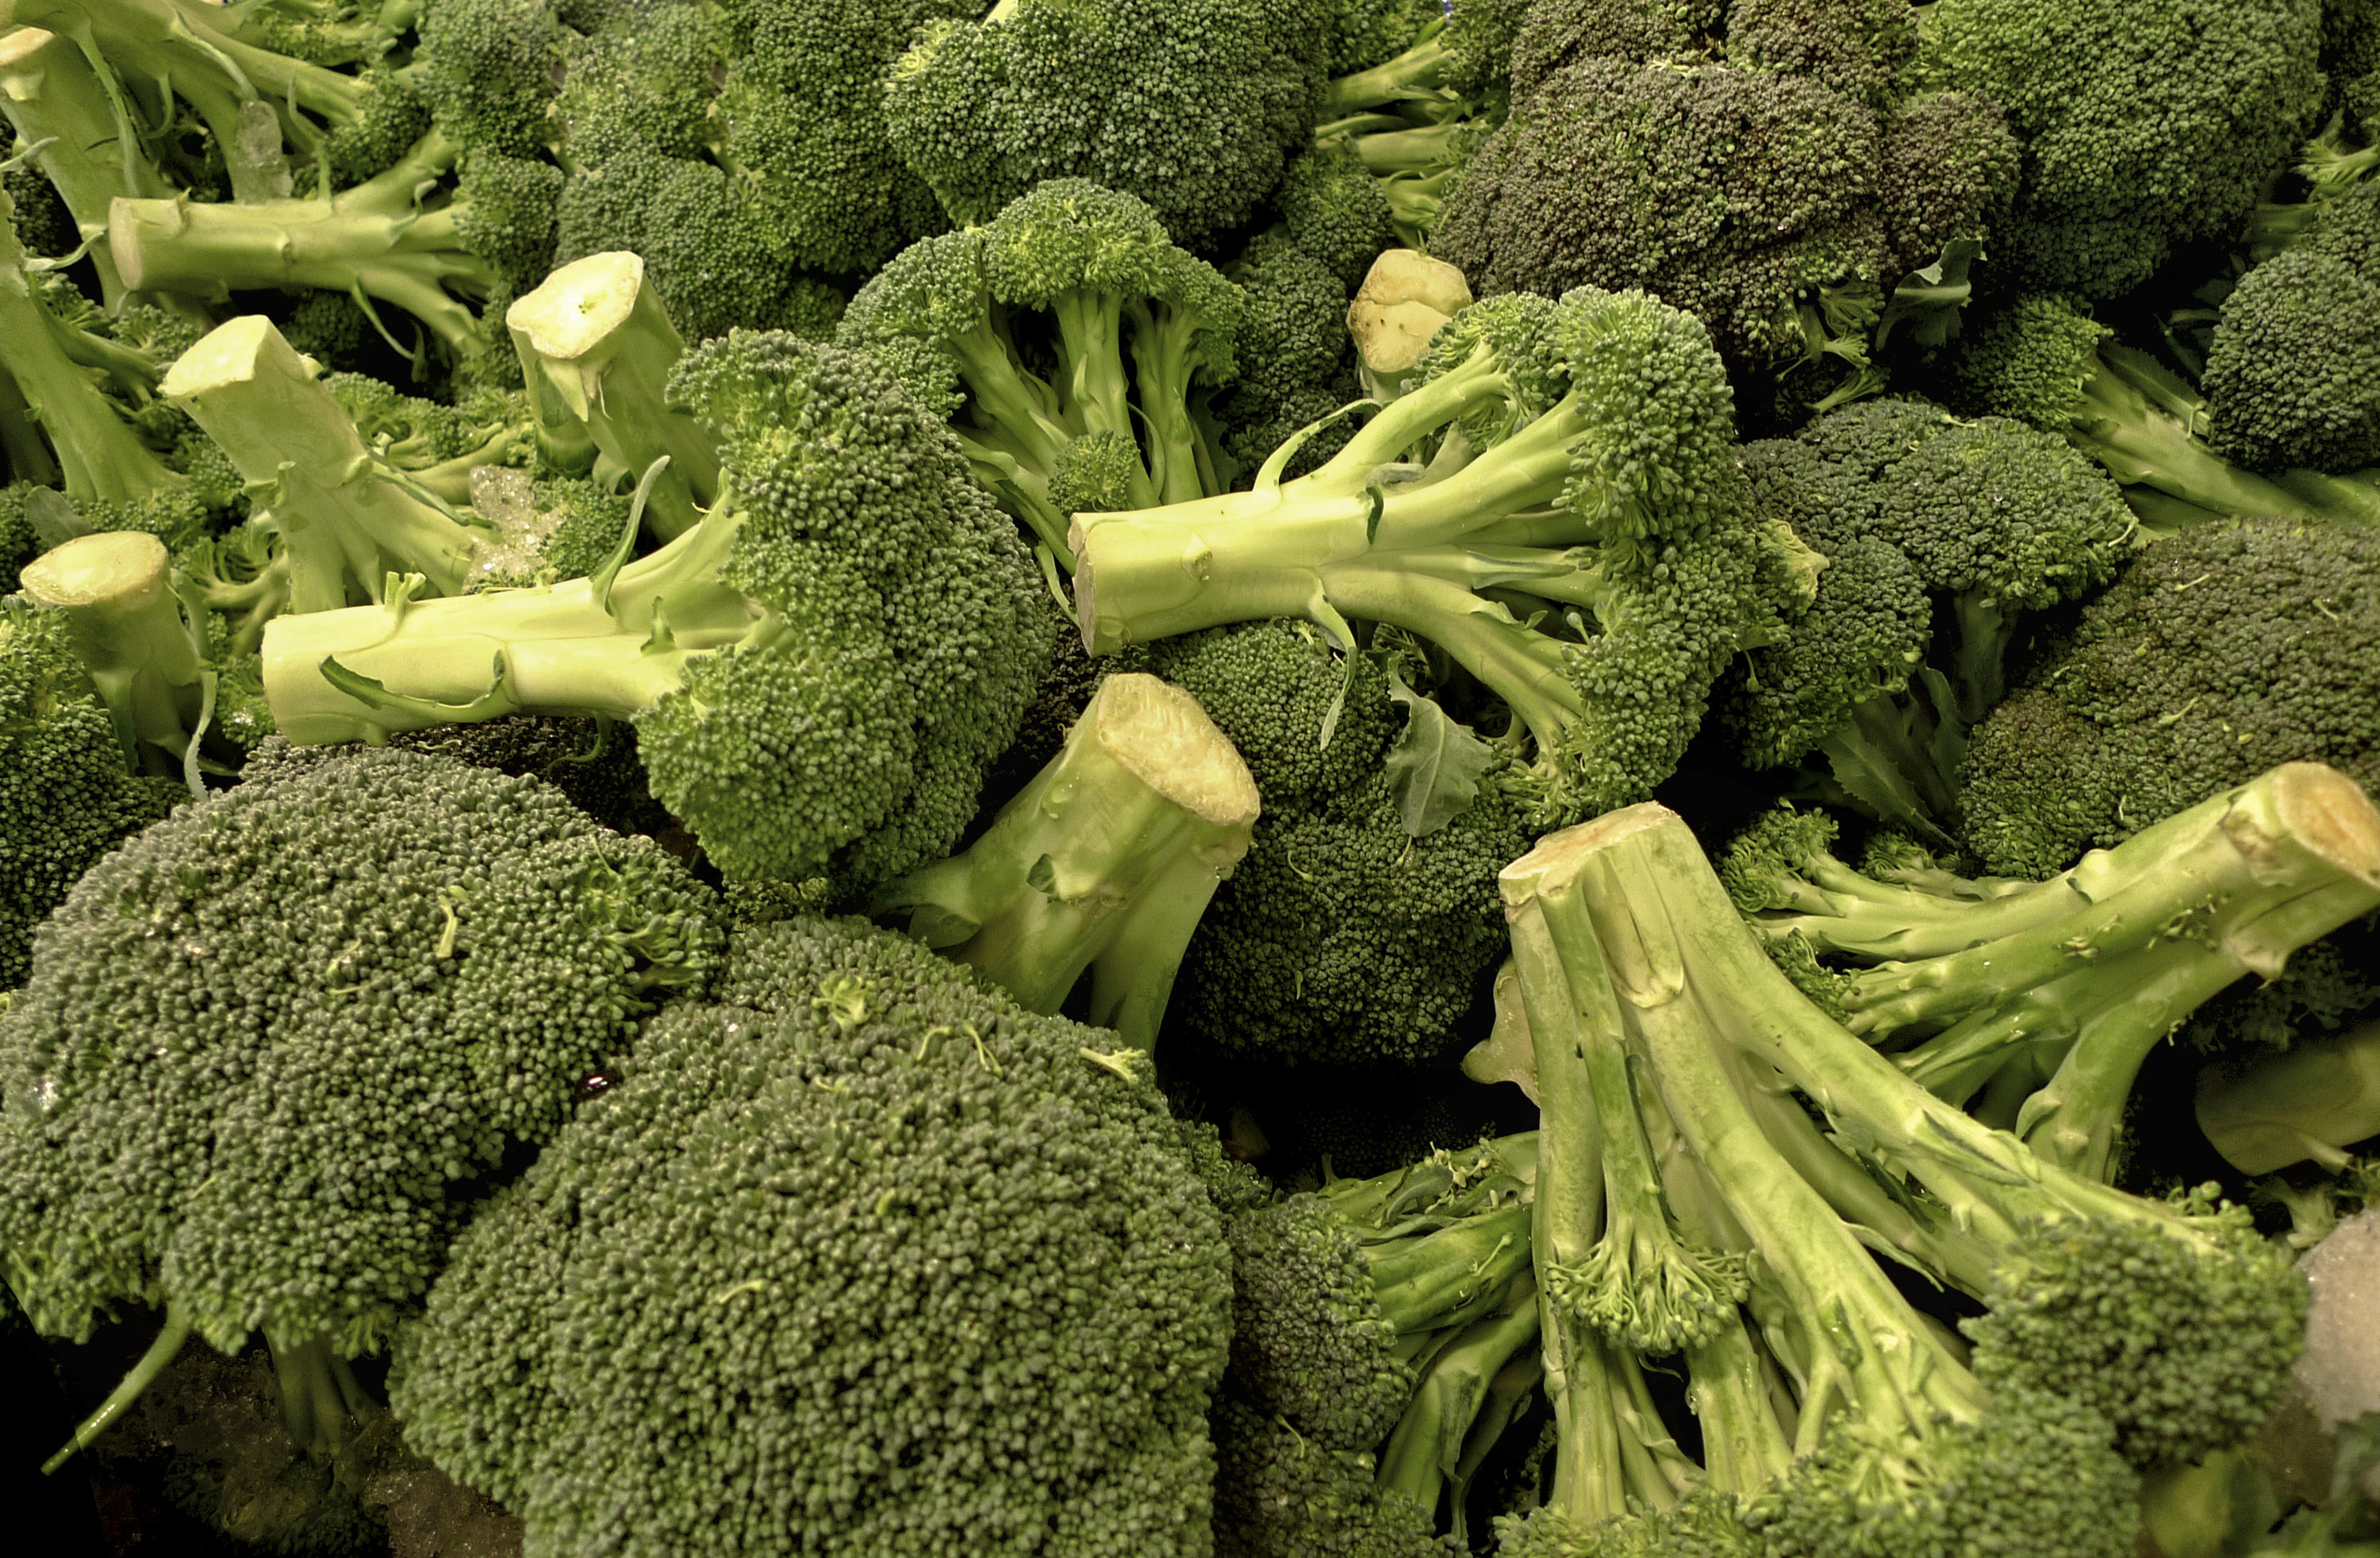 FILE – In this March 20, 2009, file photo mounds of fresh broccoli are on display in the produce section of an Arlington, Va., grocery.